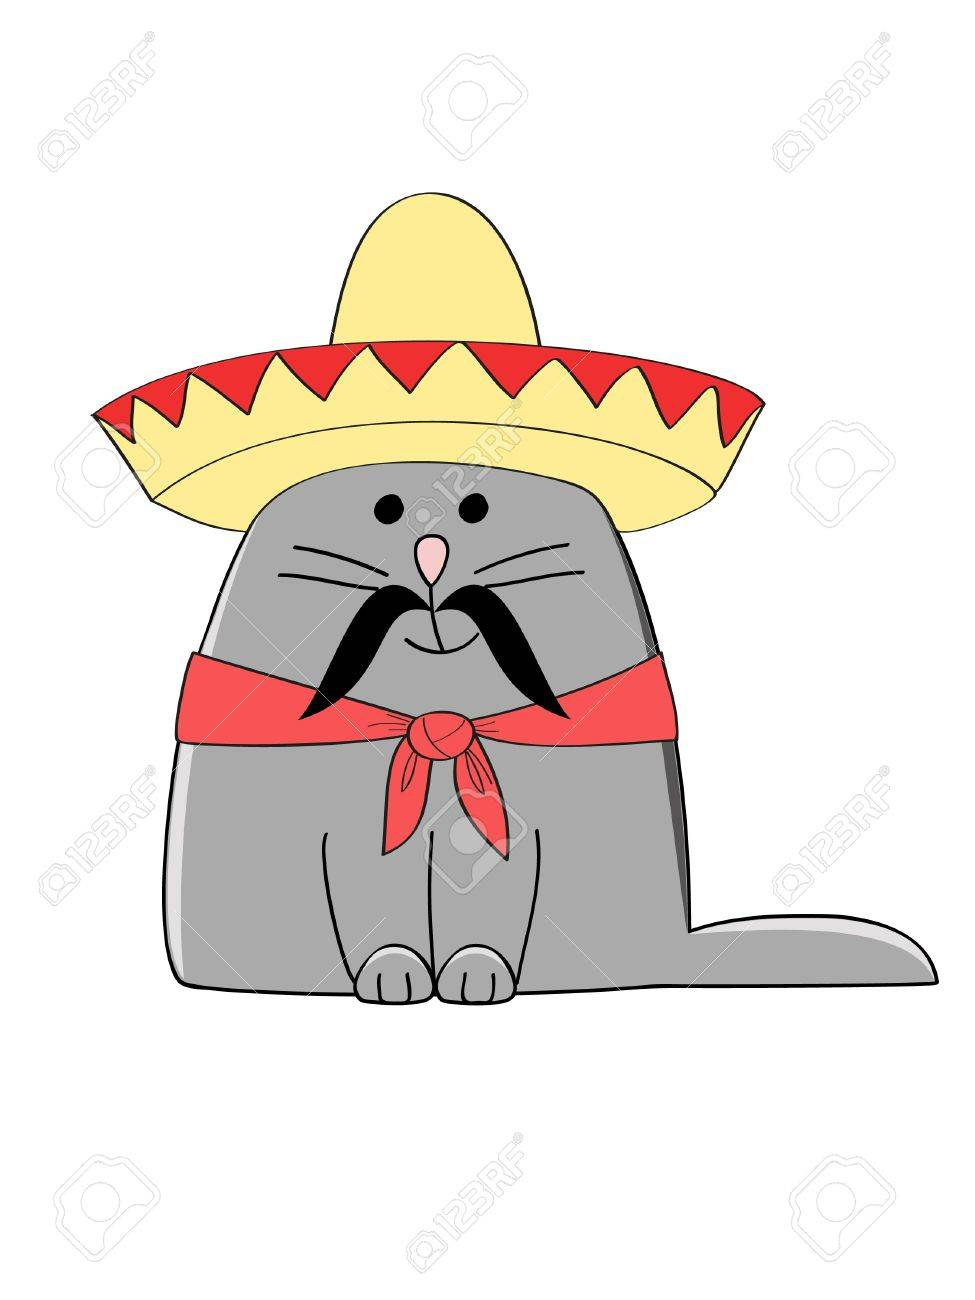 a cute grey kitten dressed as a Mexican Stock Vector - 13127967